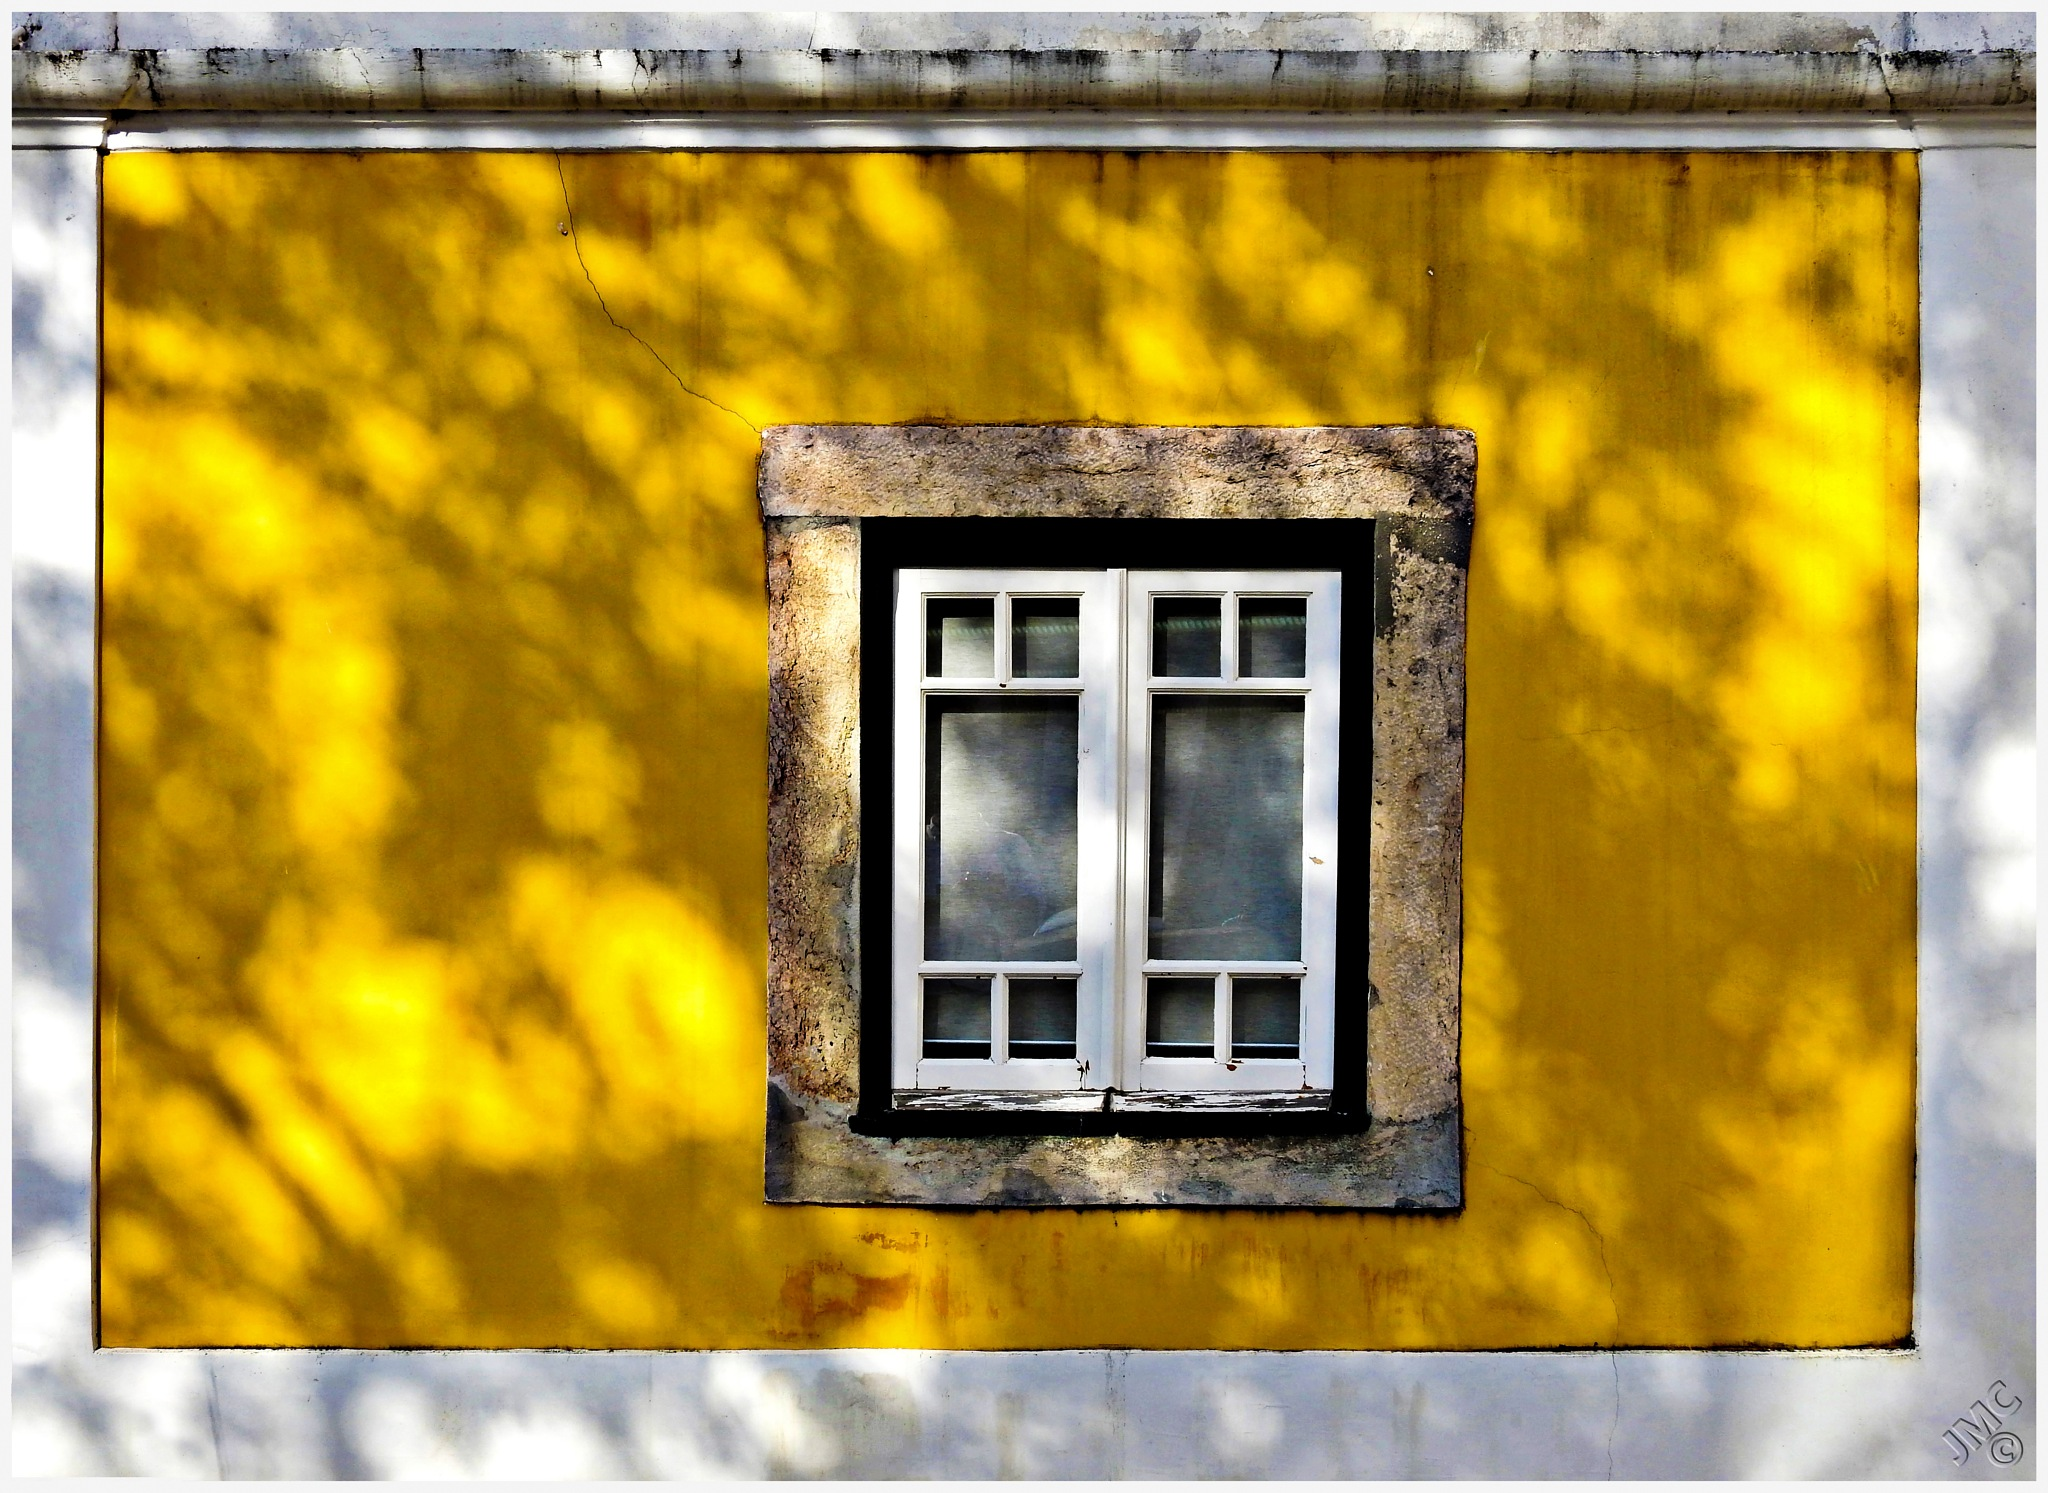 A wall and a window - Portugal by JMCtronic